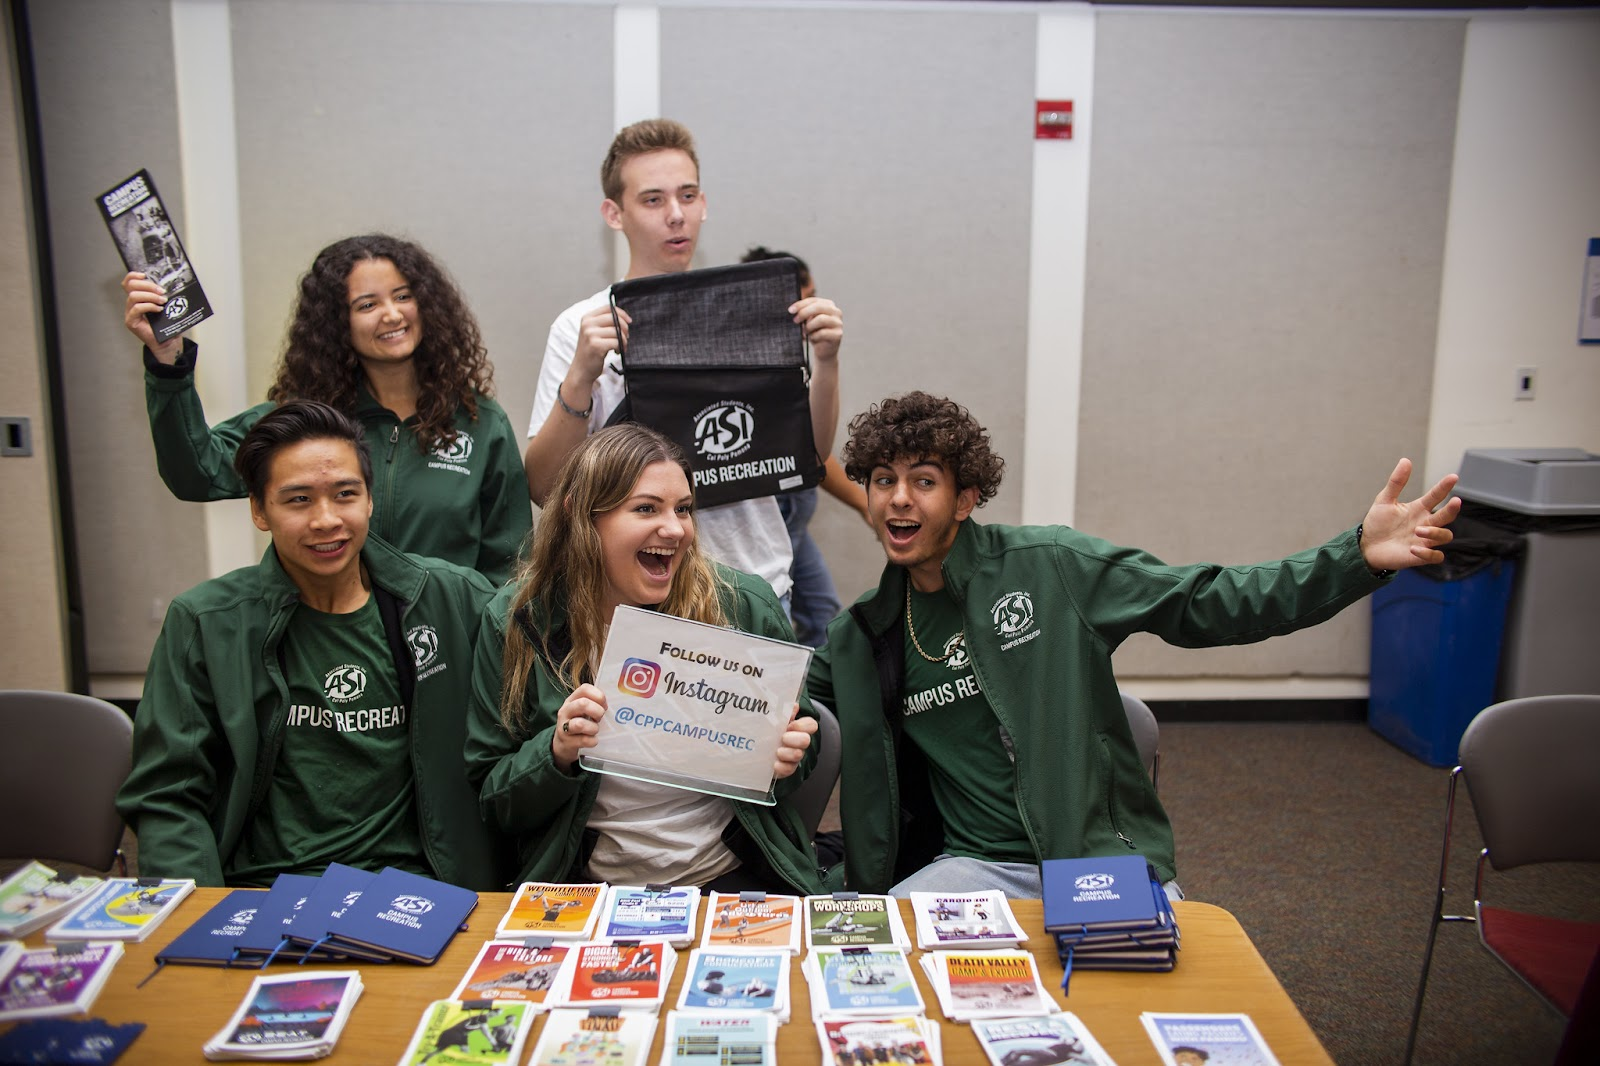 Students holding Campus Rec merchandise and posing for picture